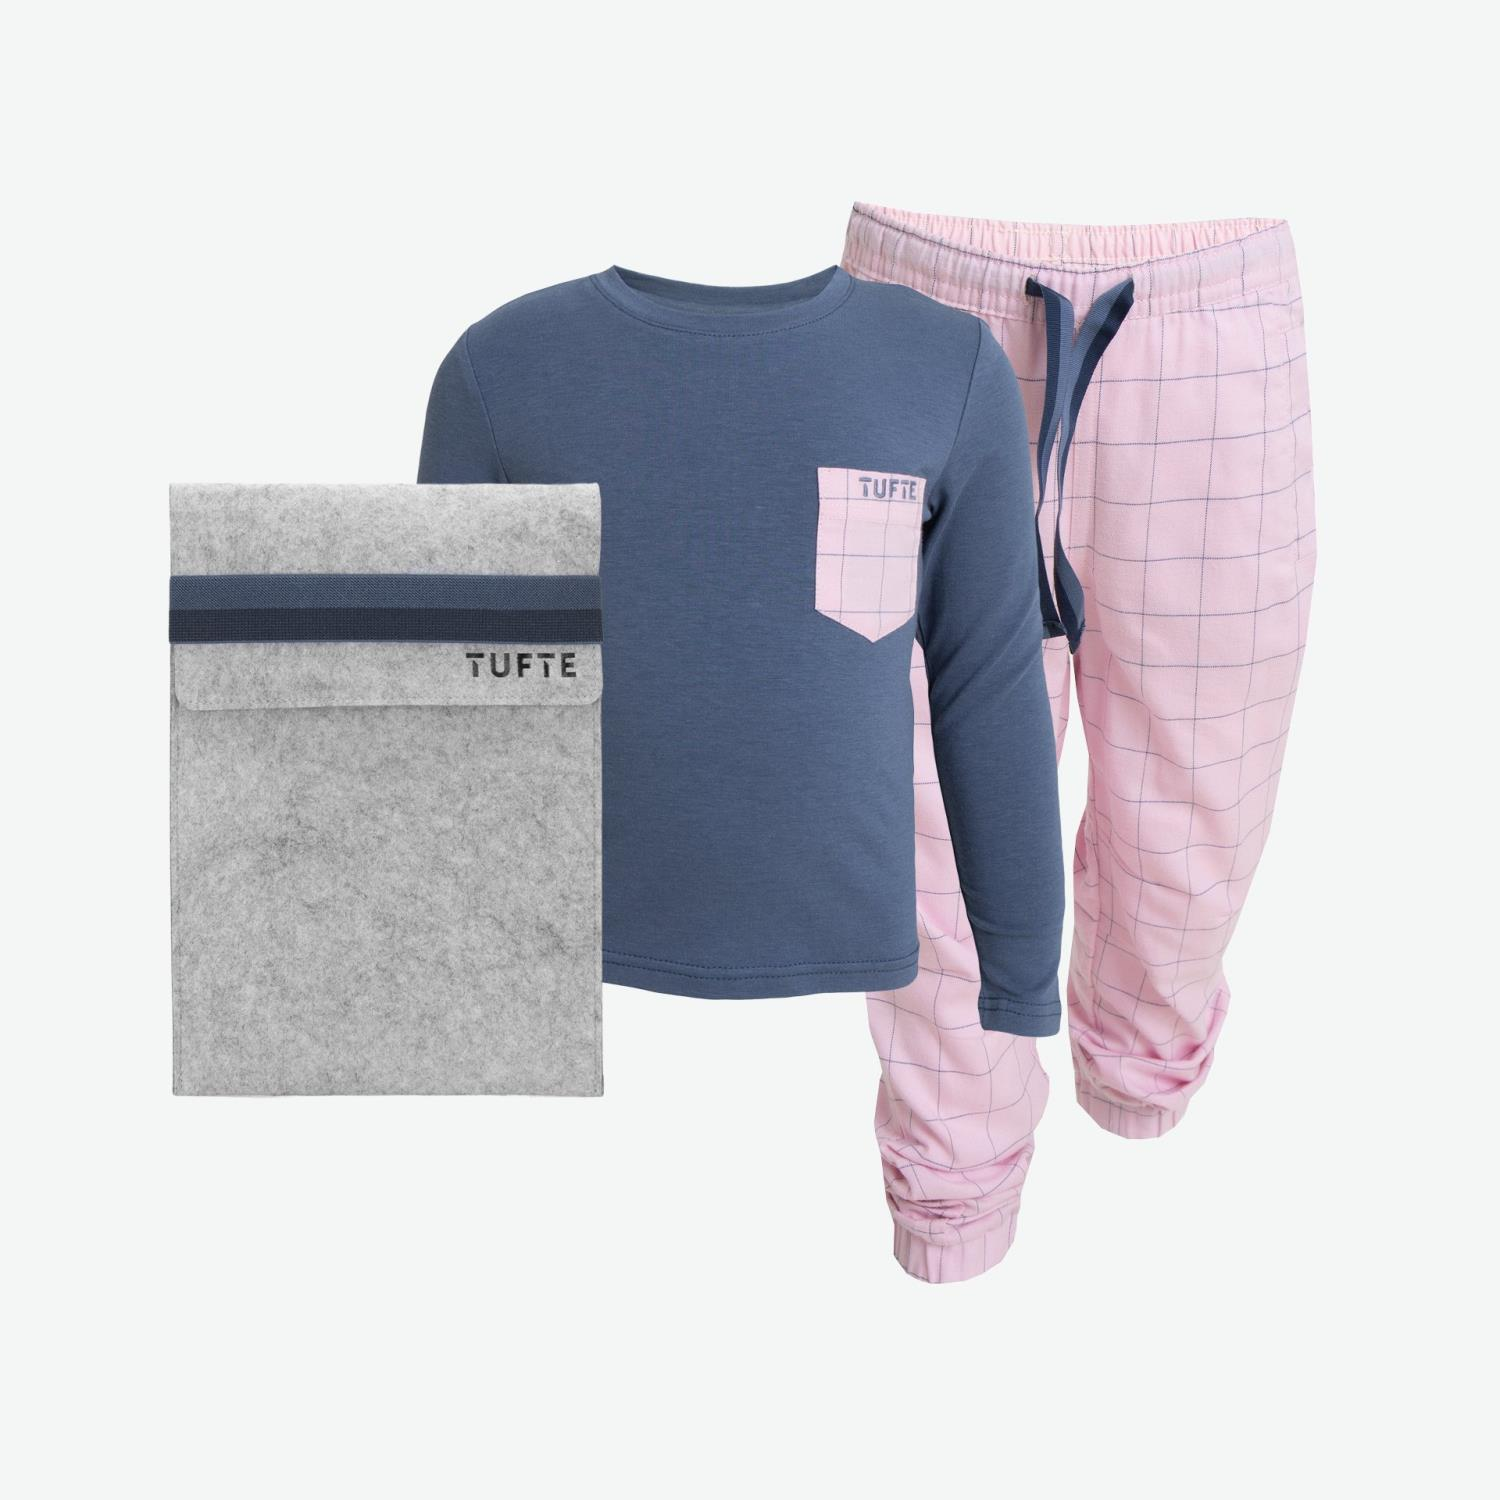 Tufte Wear  Kids  Pyjamas Set